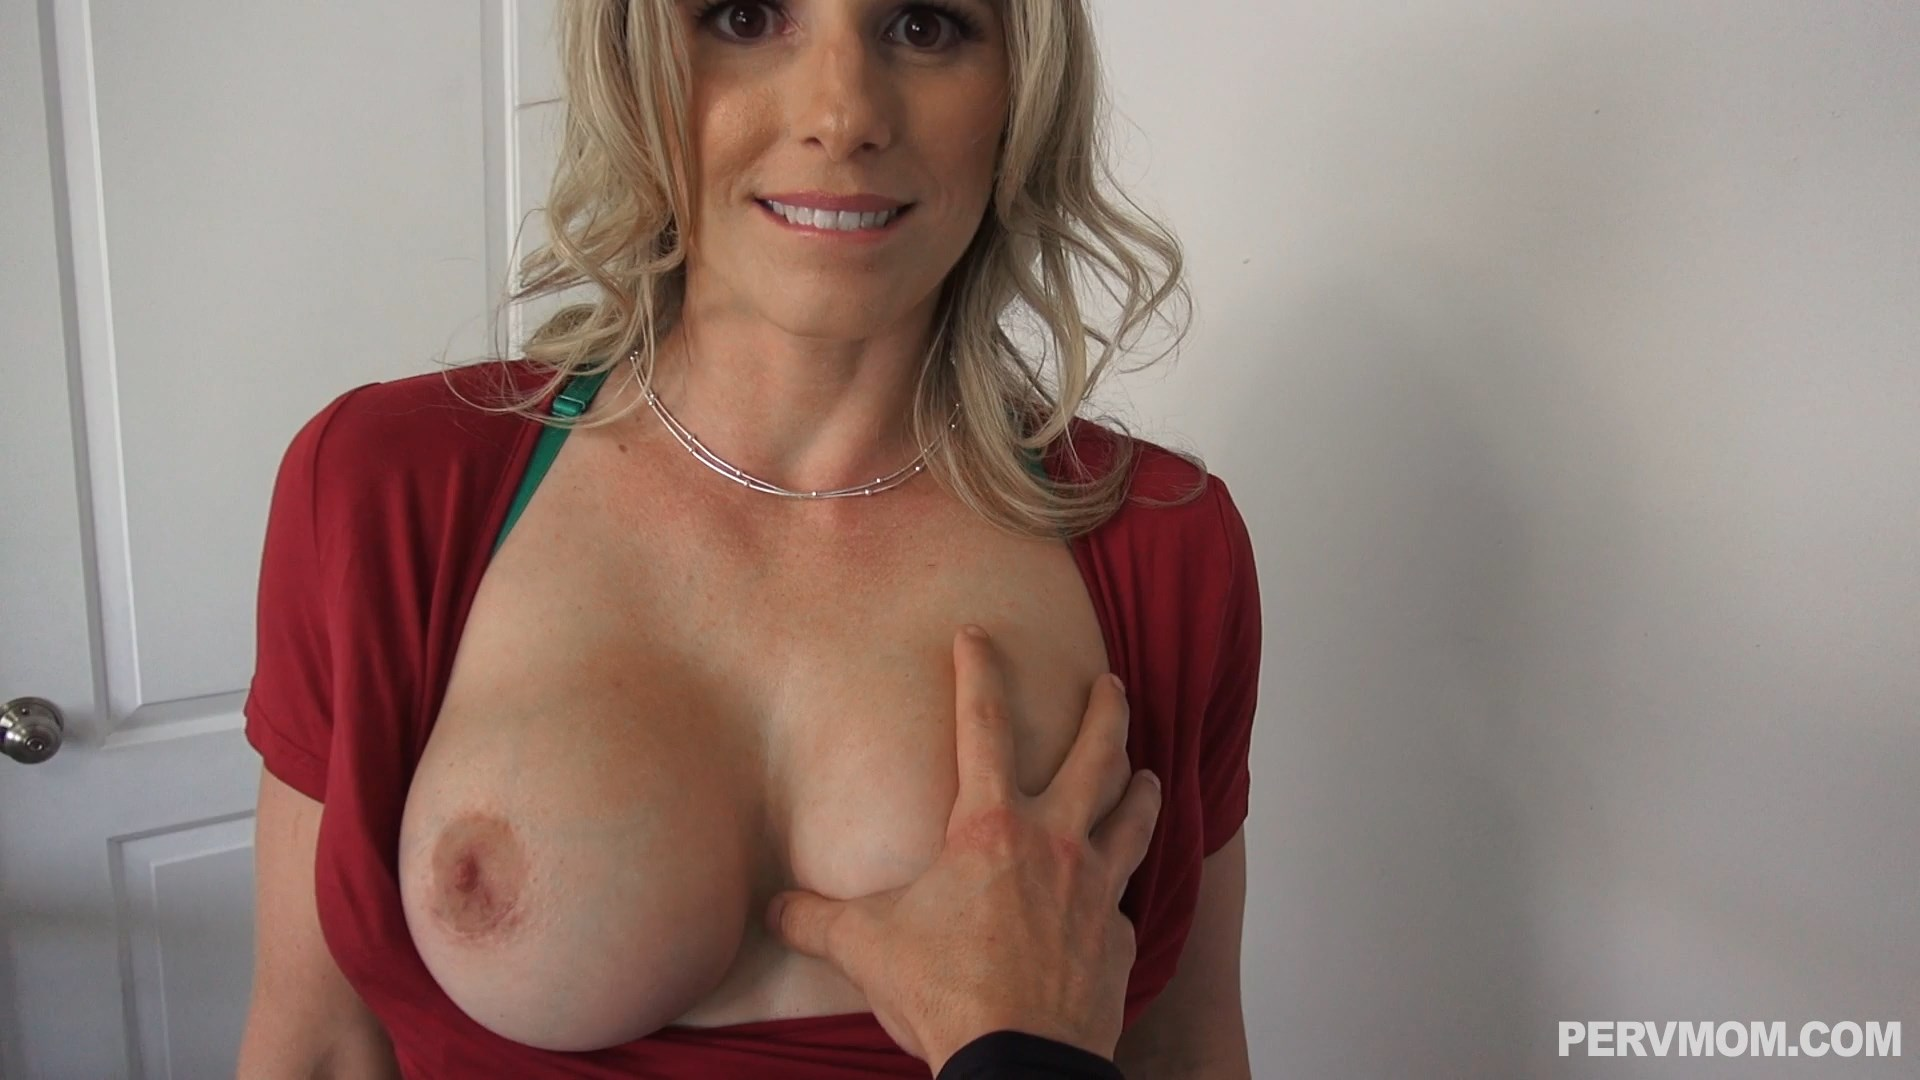 Perv Mom - Feeling Up My Stepmom!!! - Cory Chase